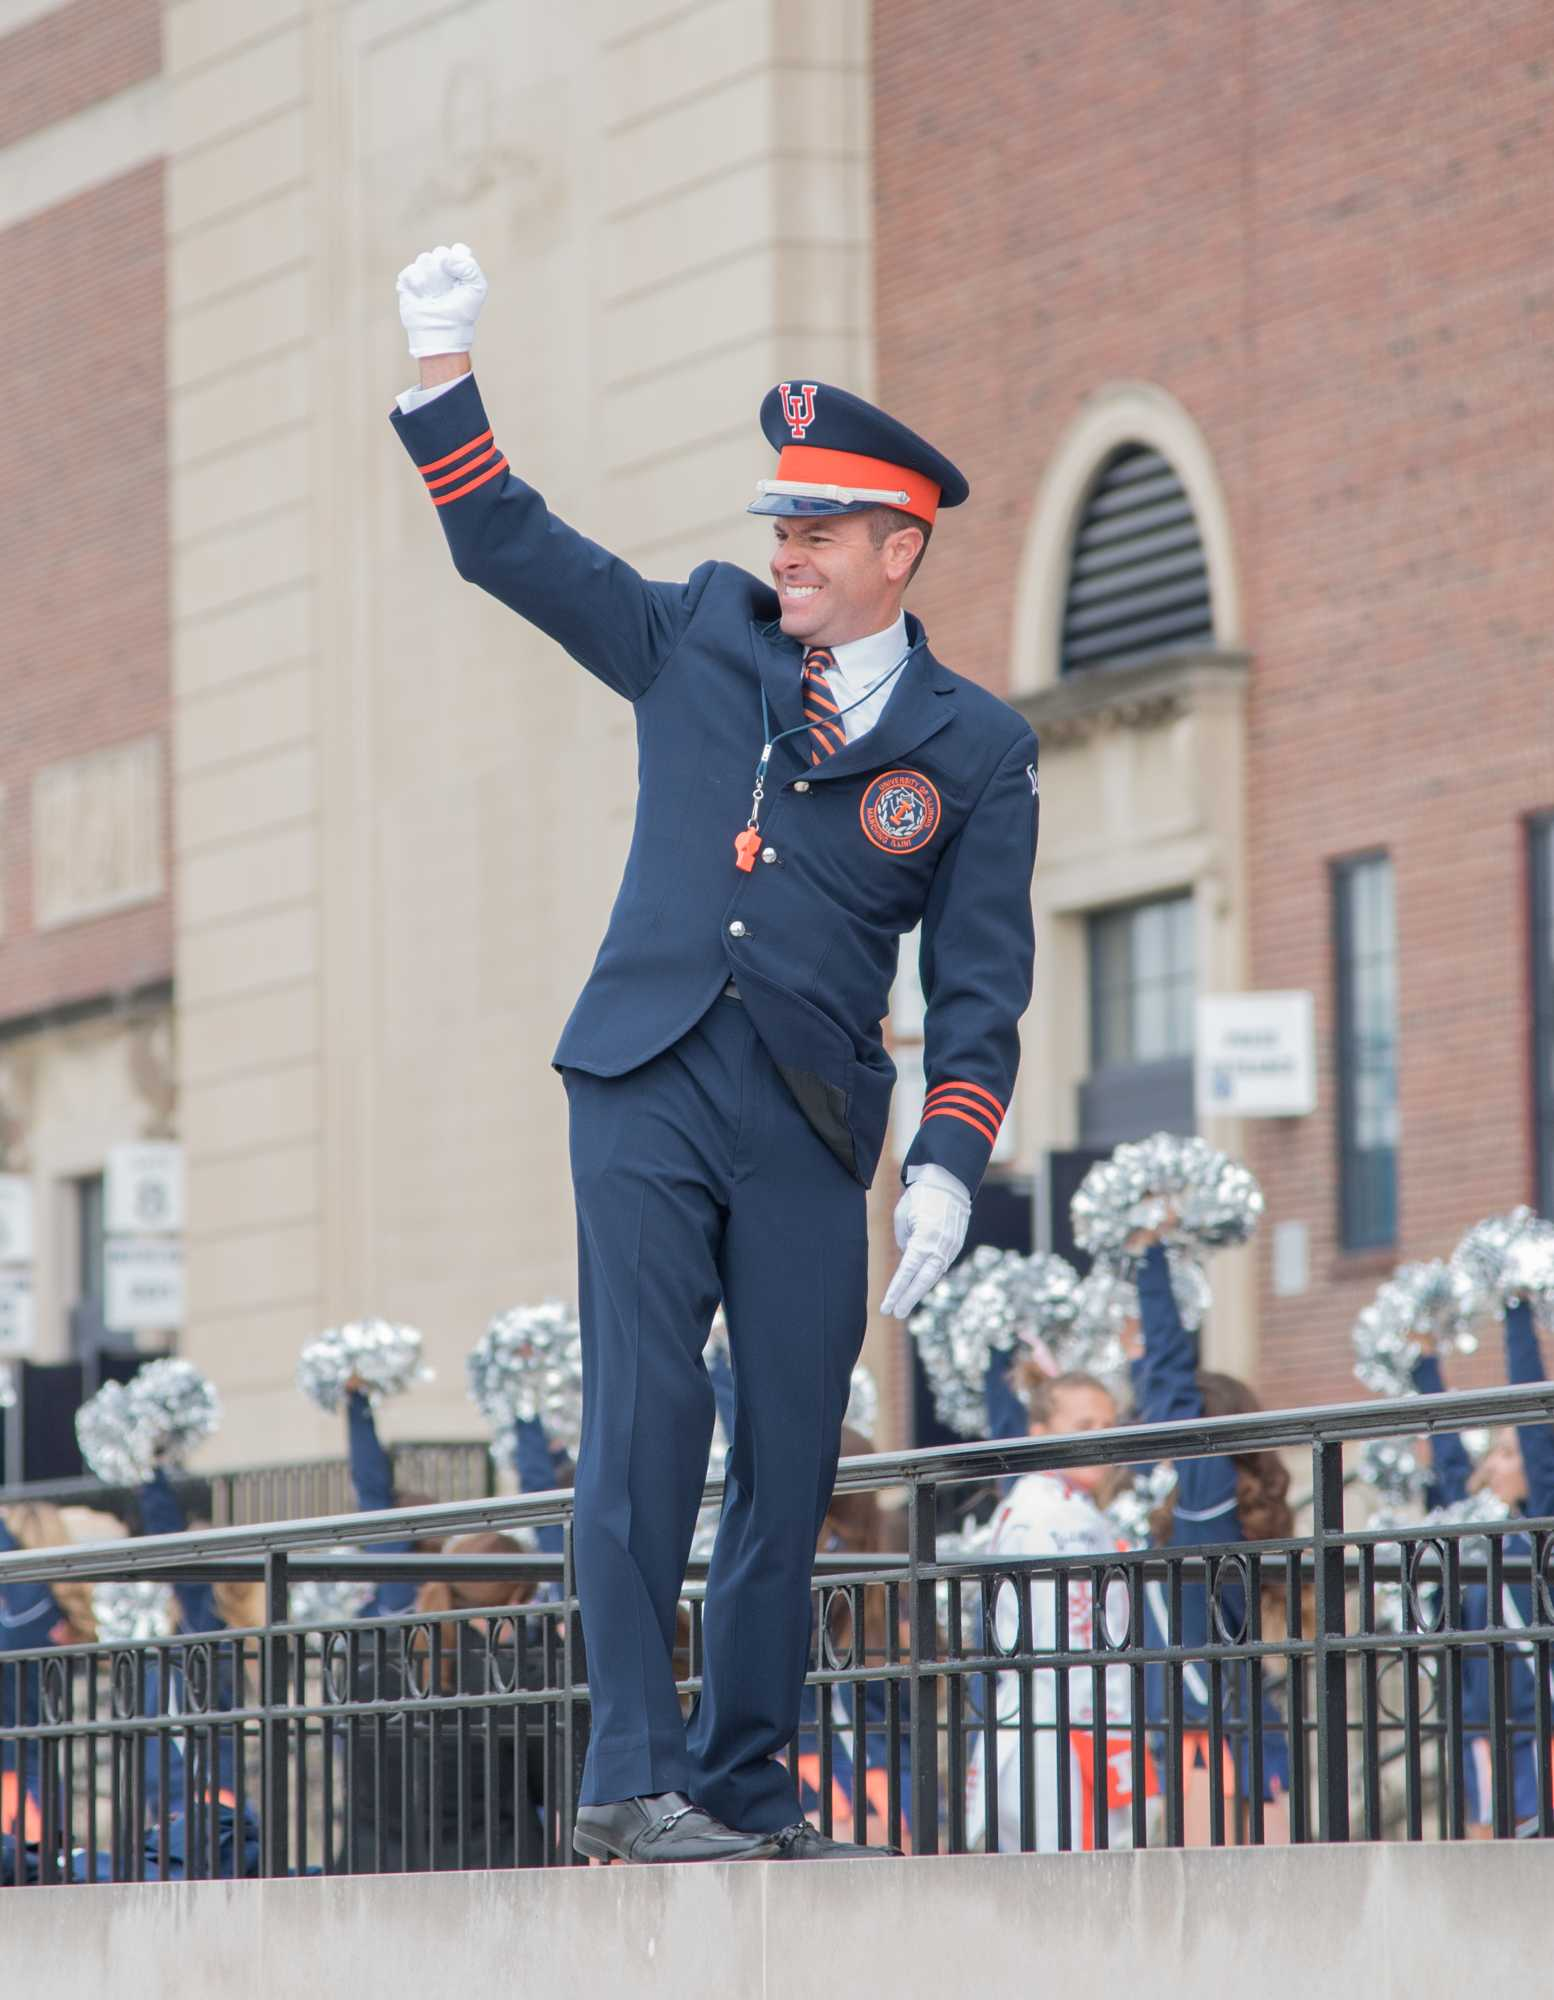 The+Marching+Illini+will+perform+in+the+89th+annual+Macys+Day+Parade+on+Thursday.